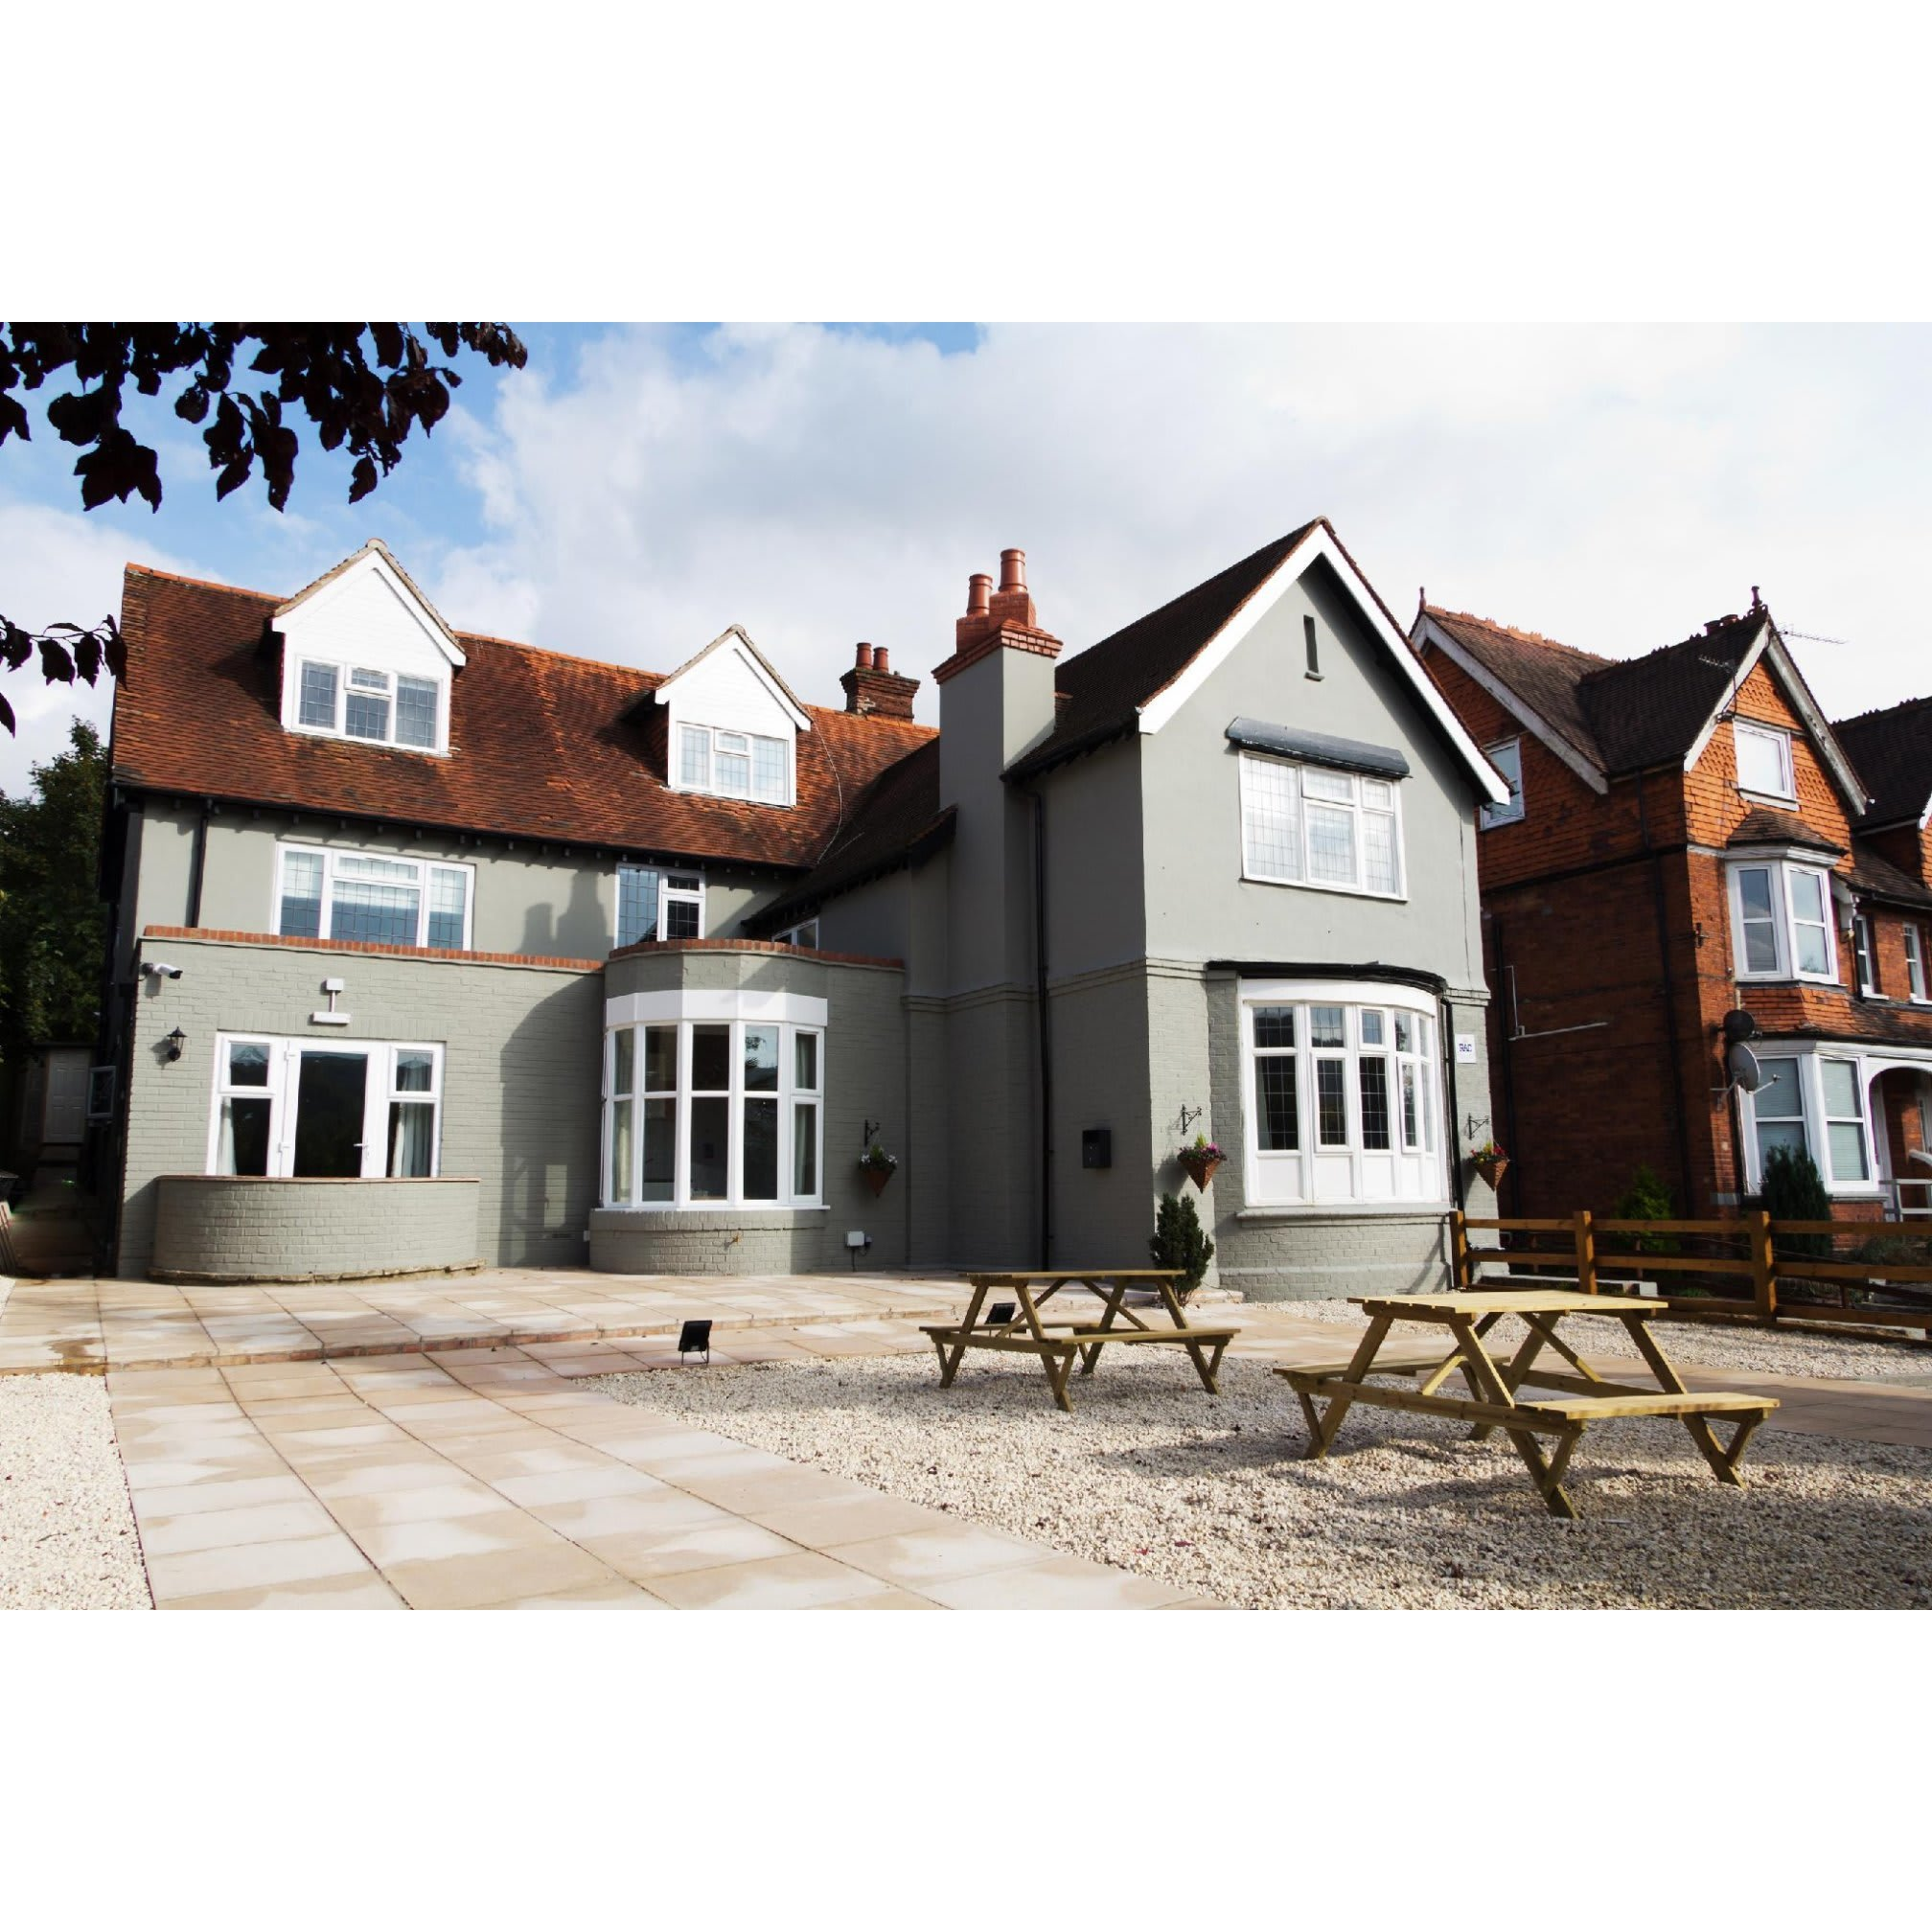 Rye Court Hotel - High Wycombe, Buckinghamshire HP11 1BT - 01494 450101 | ShowMeLocal.com